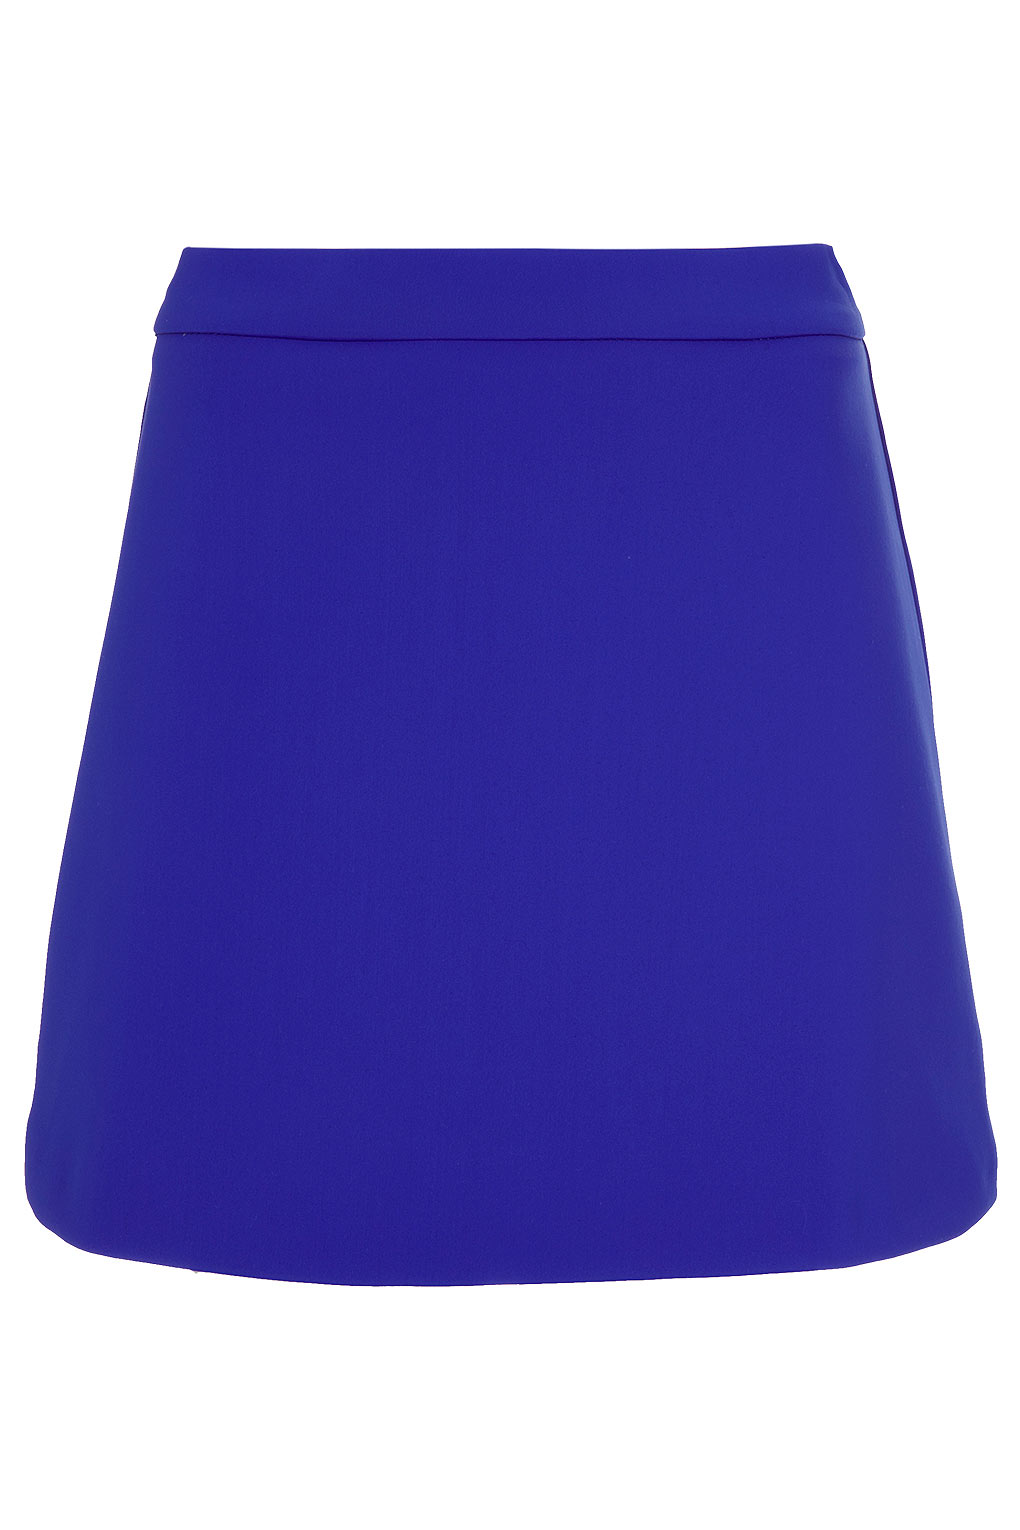 topshop a line skirt in blue lyst